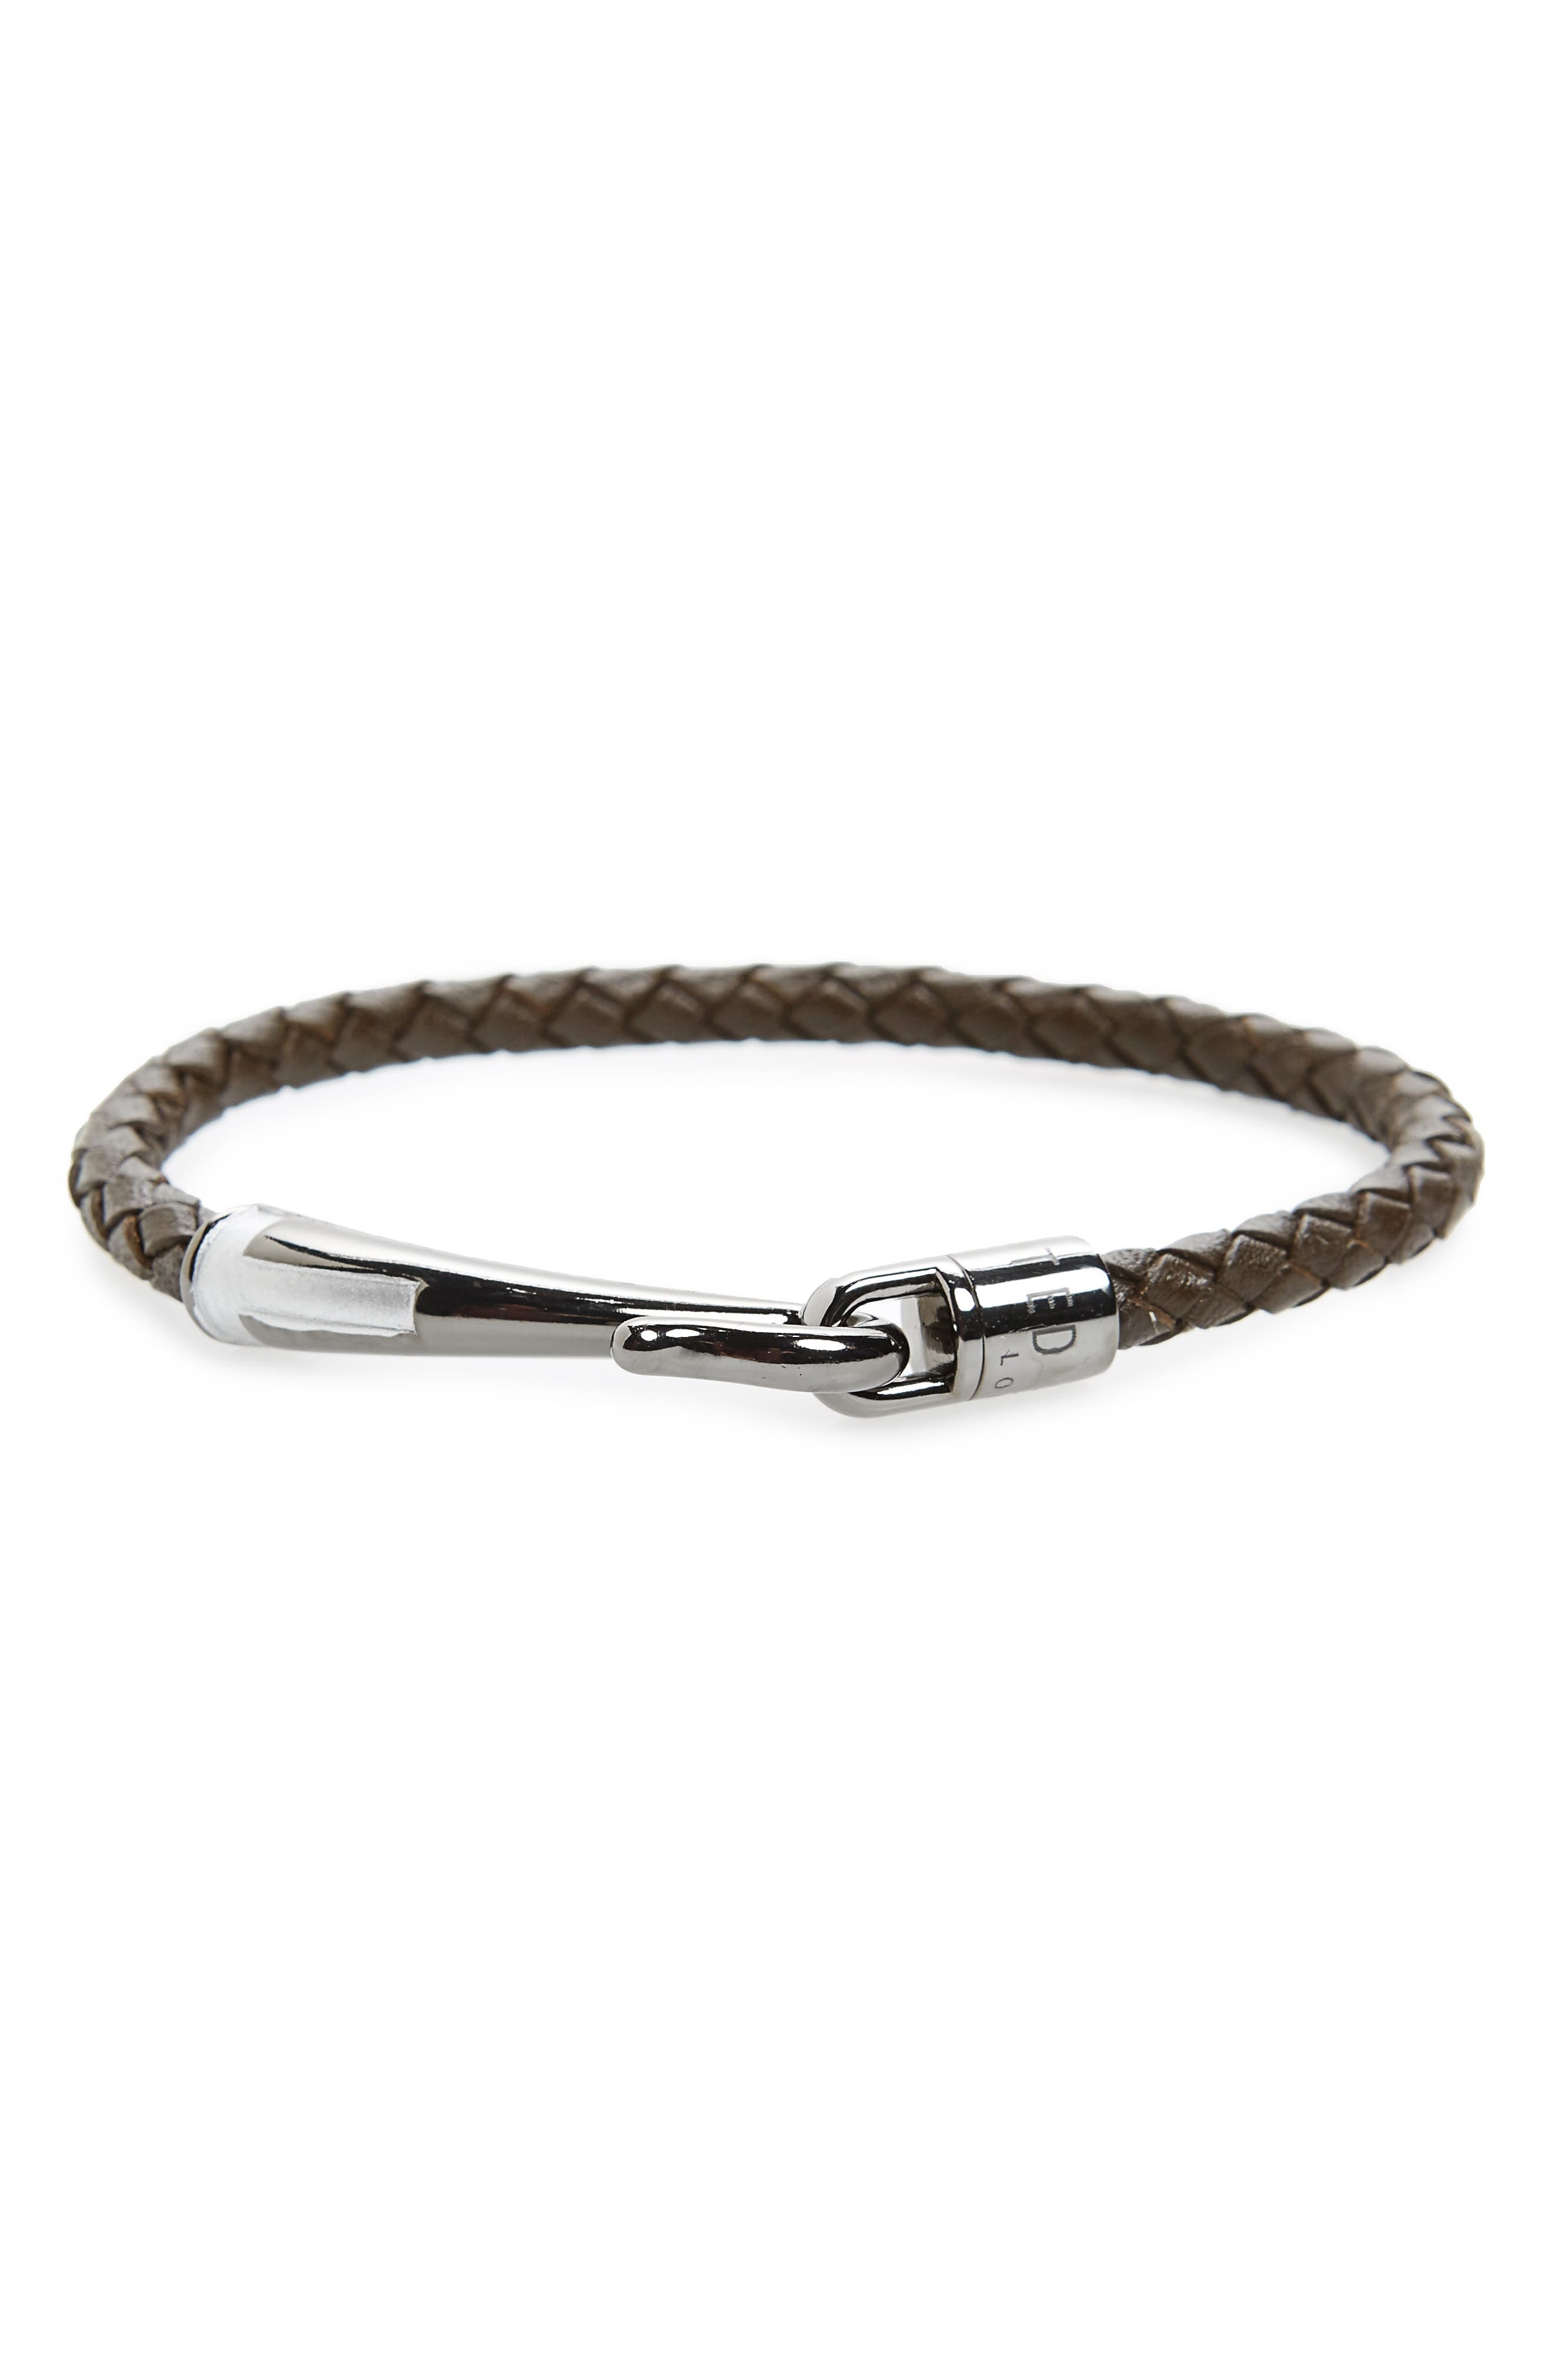 Chewer Braided Leather Bracelet,                         Main,                         color, Chocolate